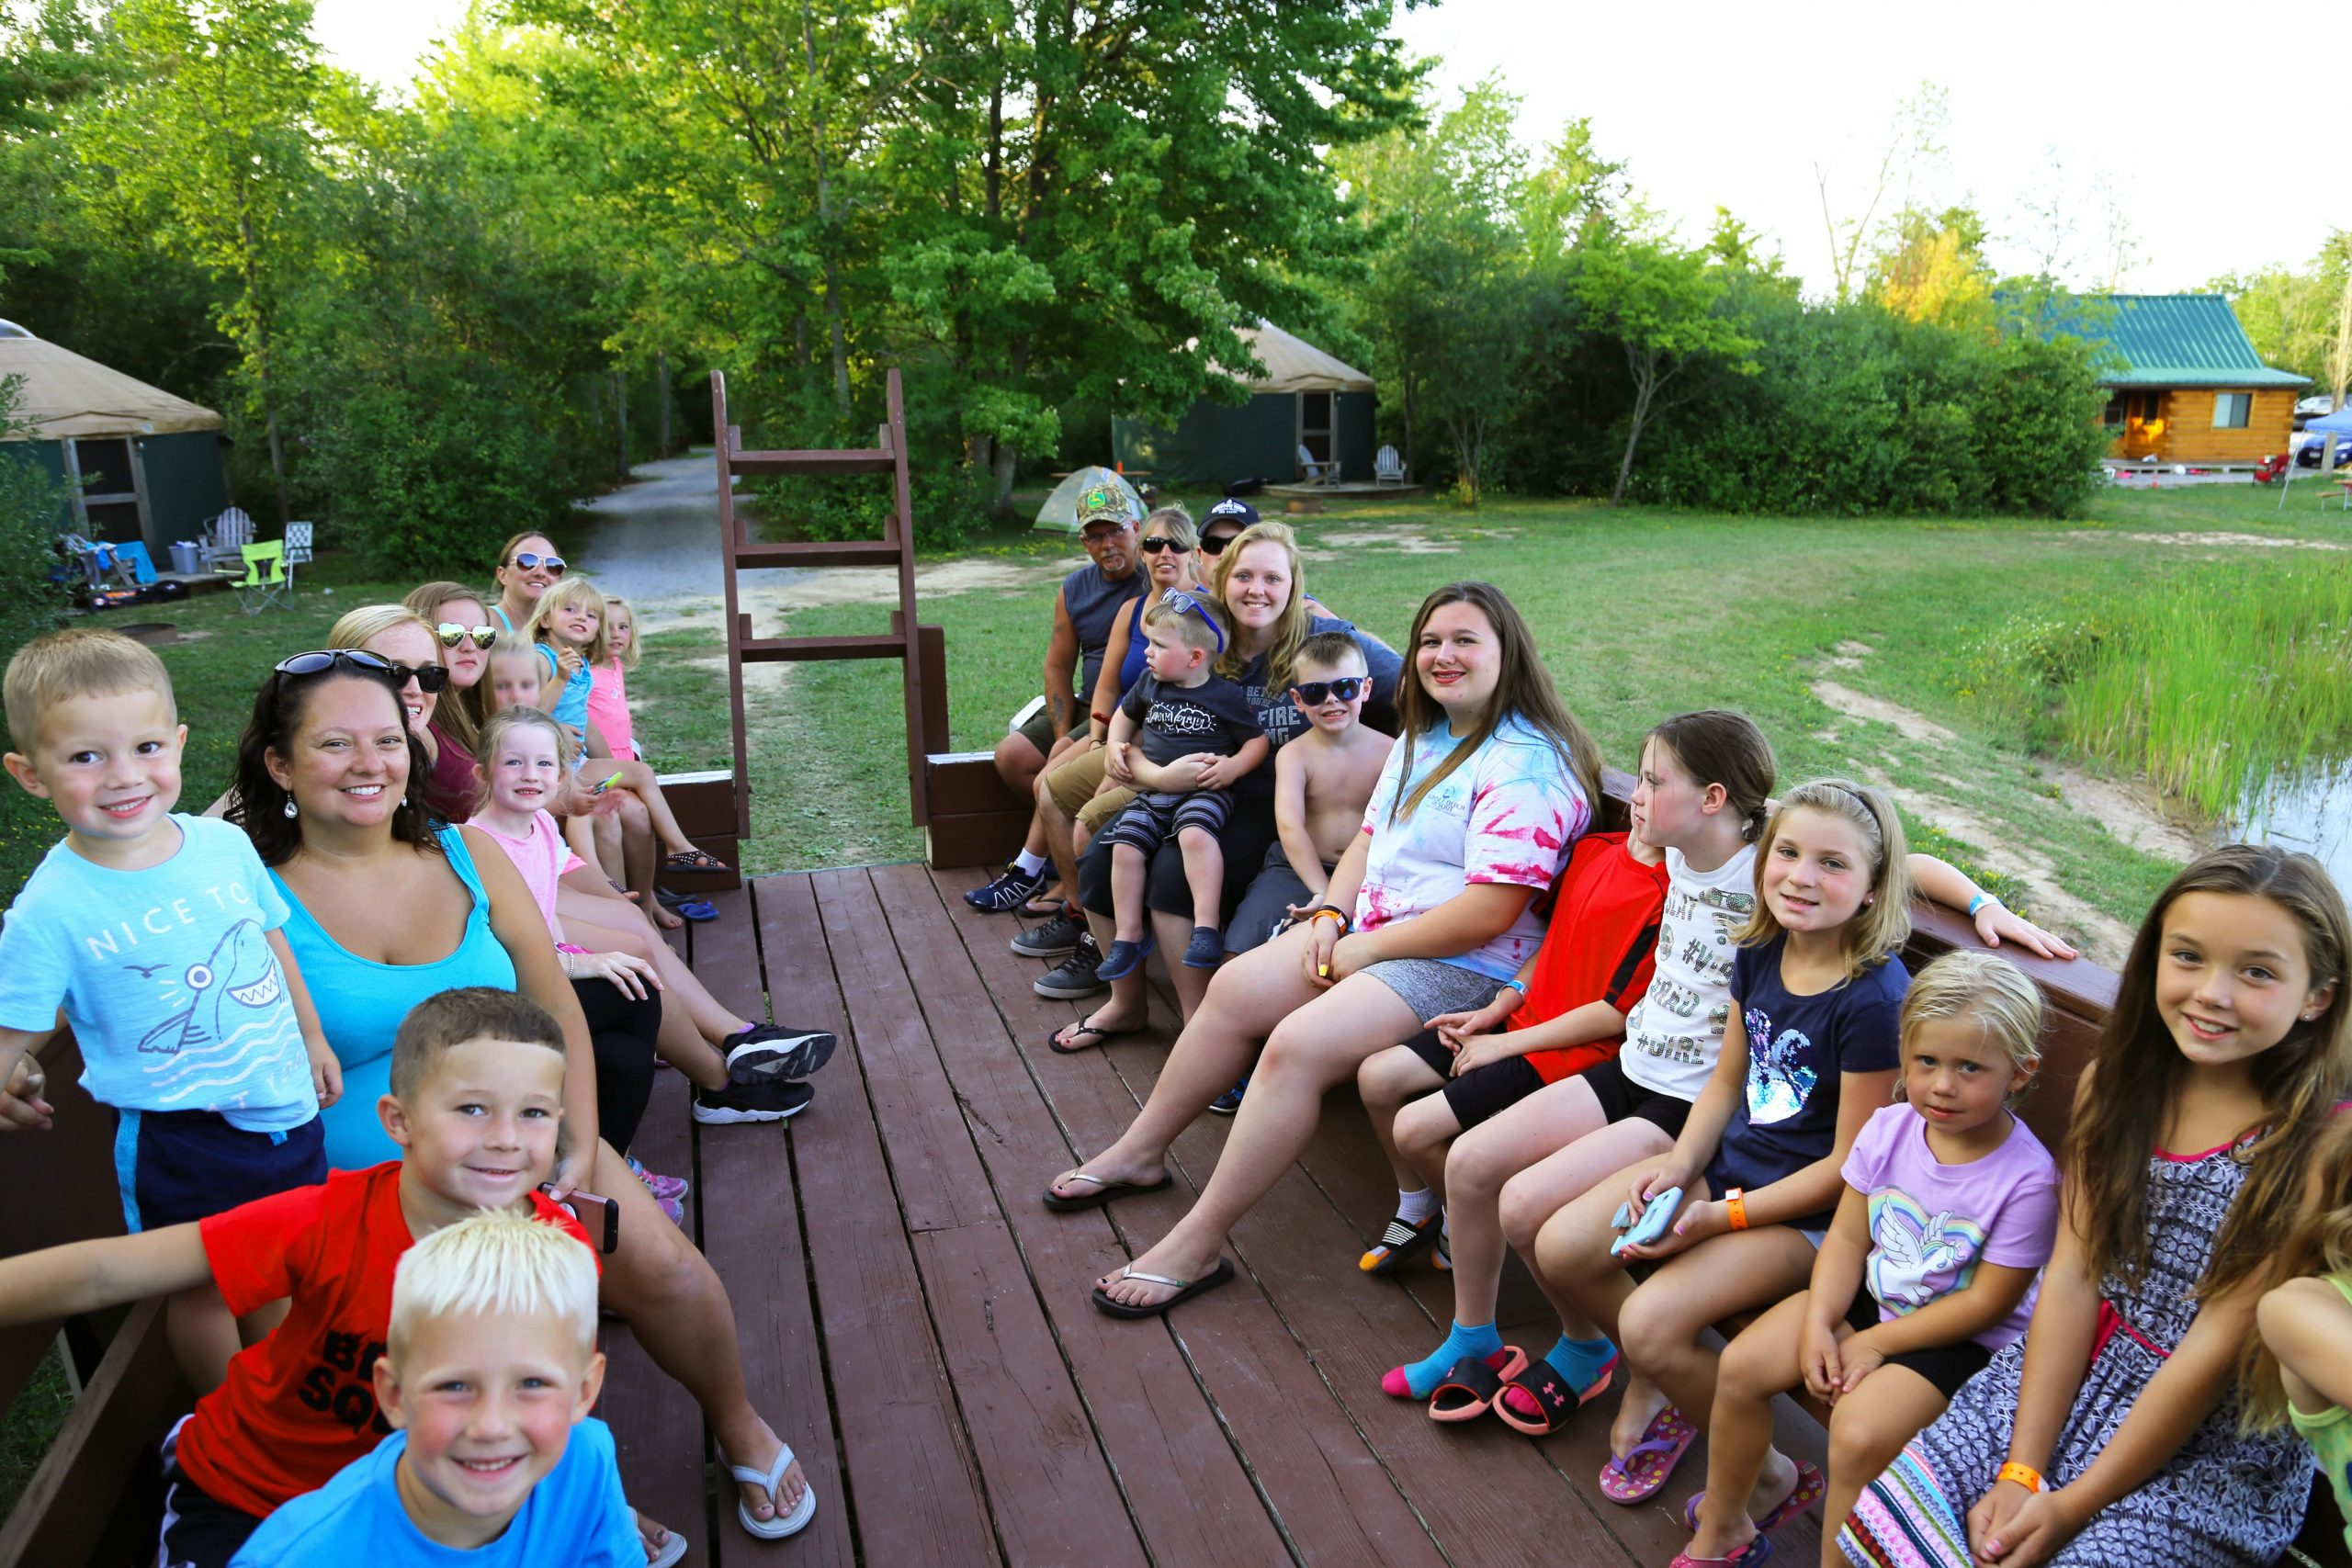 kids and adults riding on wagon ride through trees